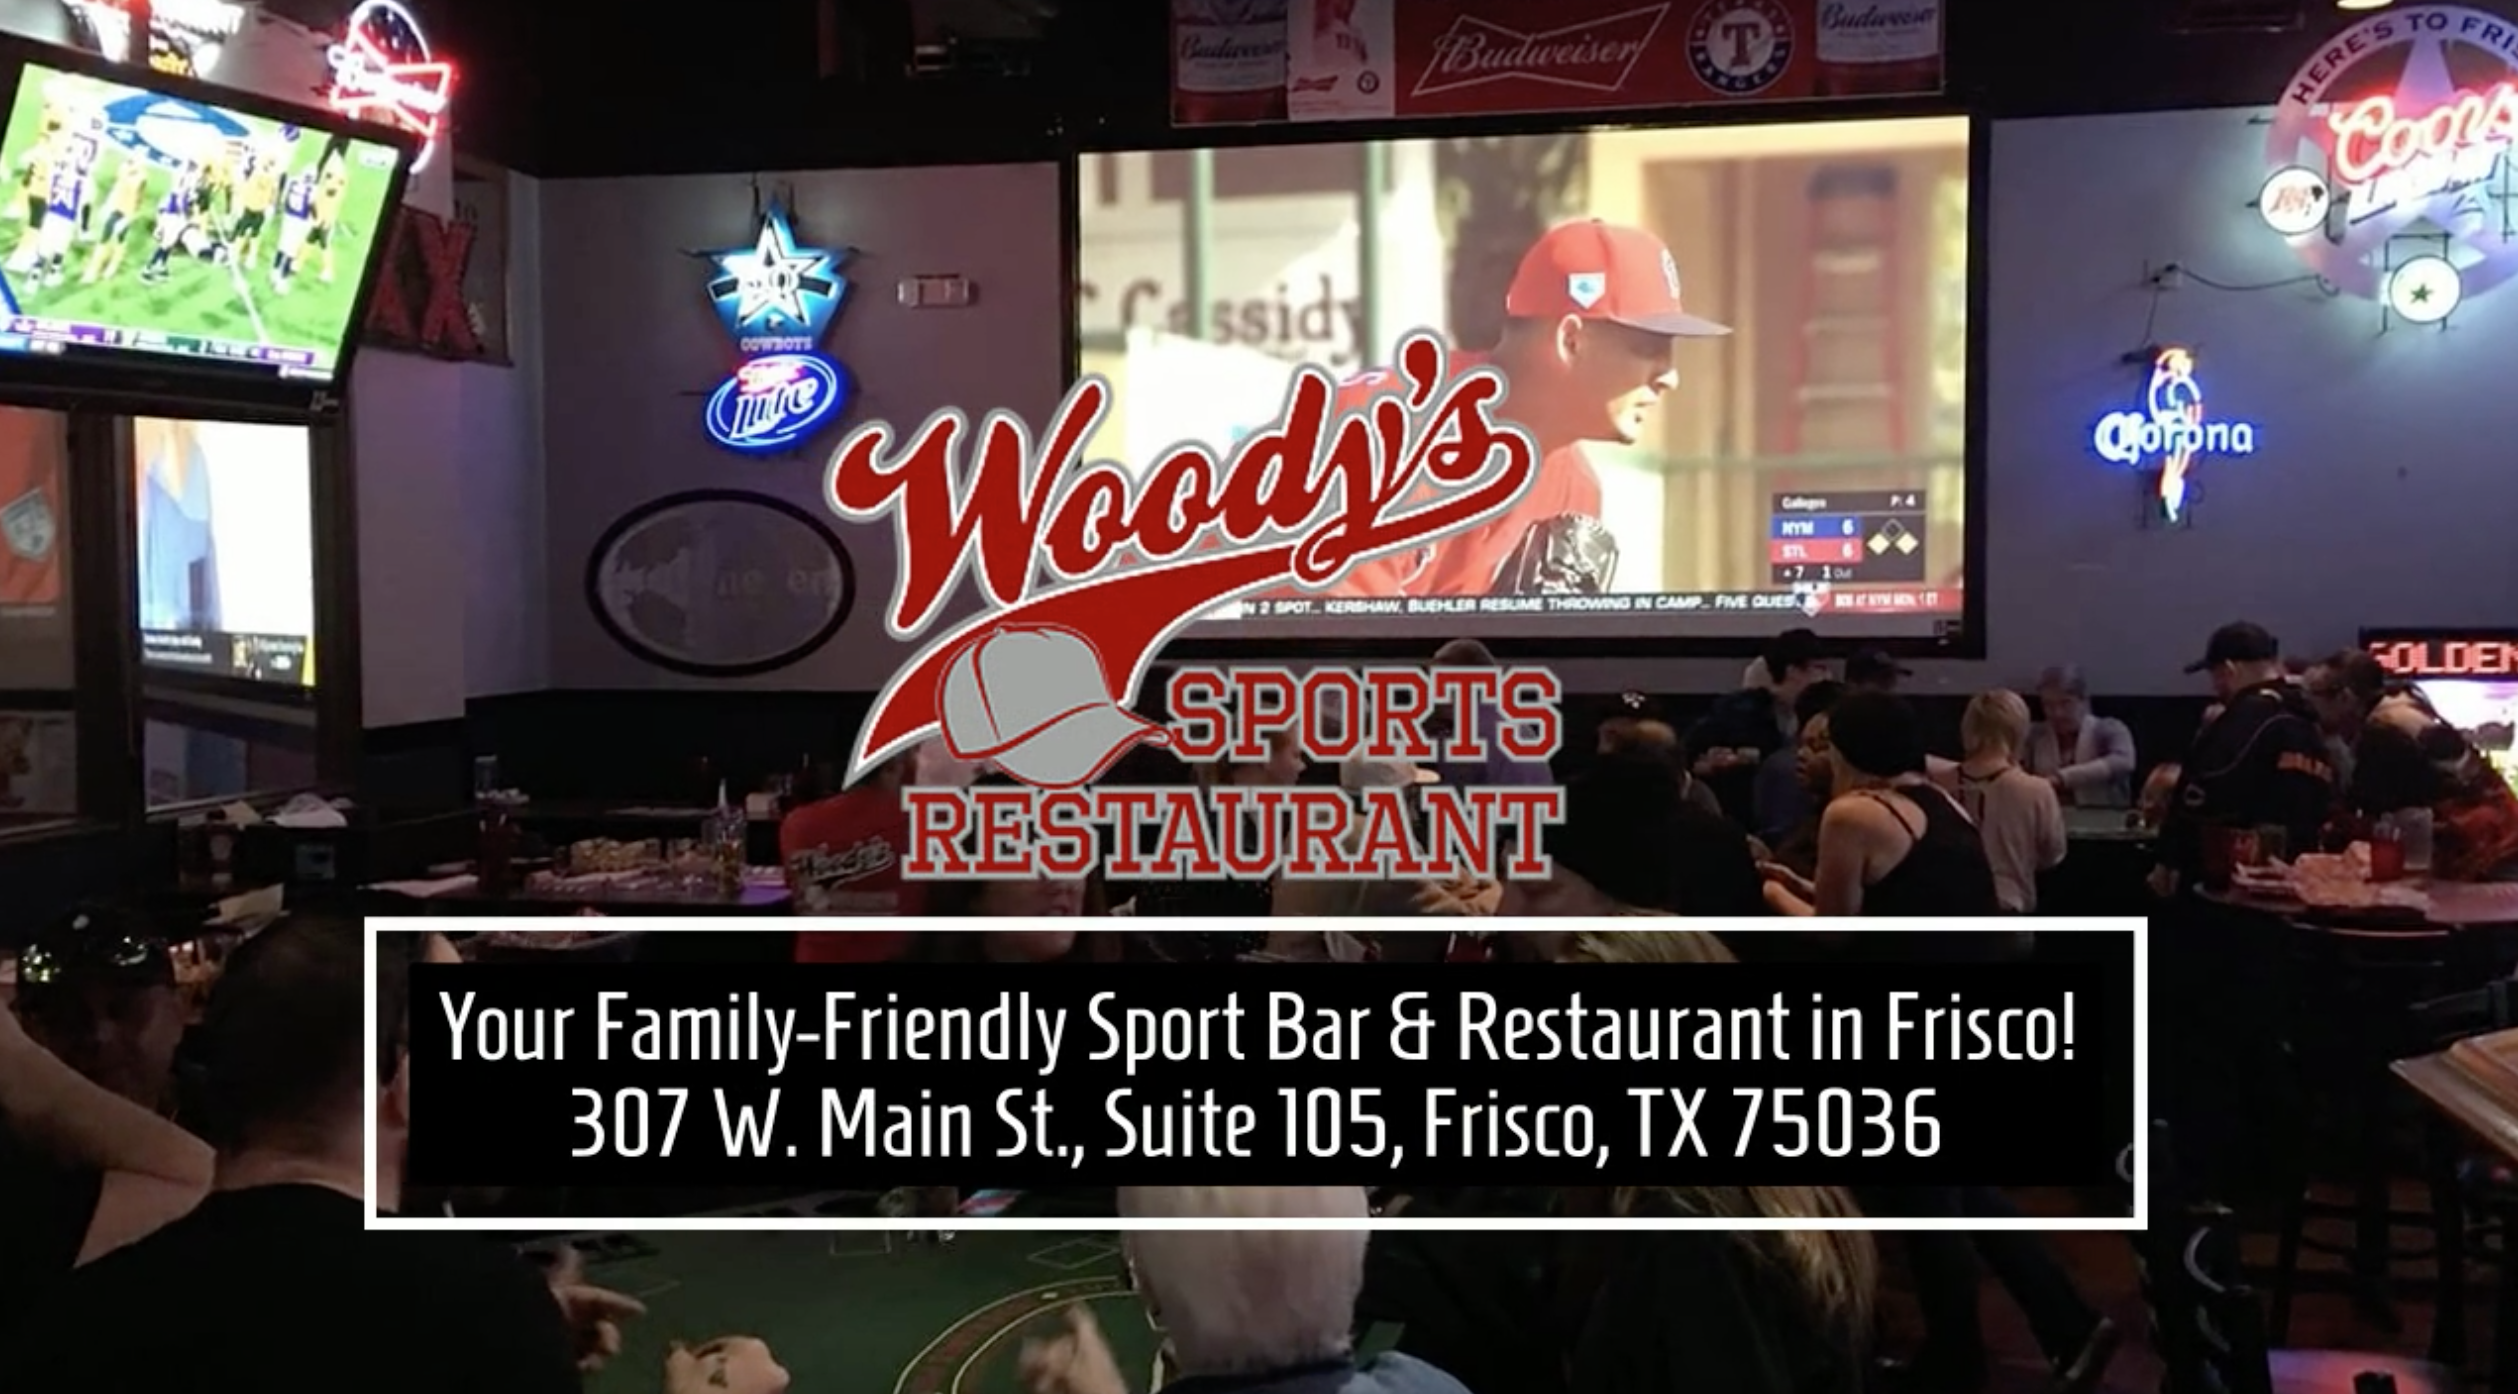 Woodys Sports Restaurant Home Page